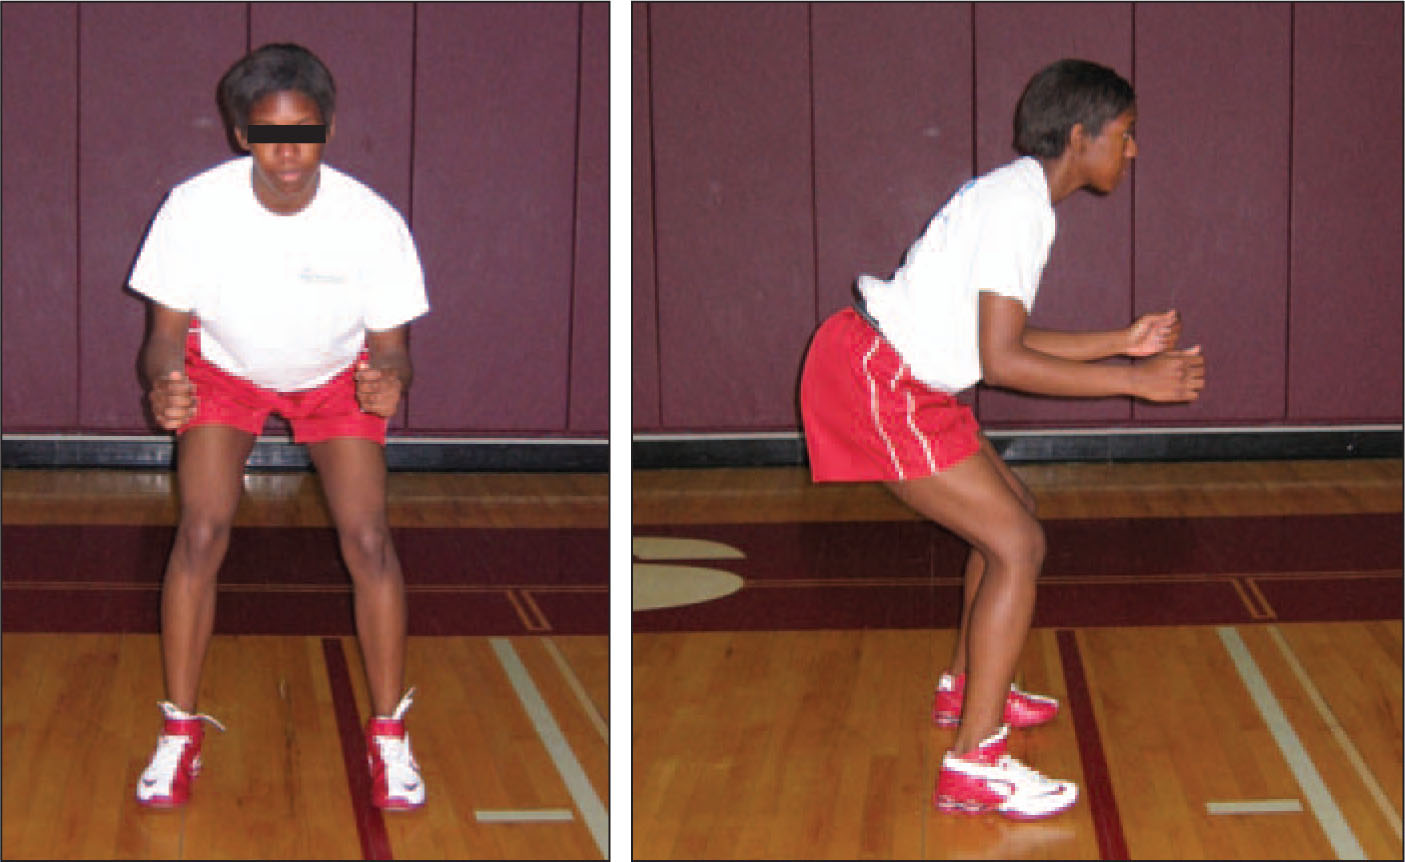 Athletic Position, Which Is Believed to Reduce the Risk of ACL Injury. A. Frontal View (left). Athlete Has More Hip Flexion. Knees Are Aligned with the Hips. Weight Is Evenly Distributed Across Both Feet. B. Lateral View (right). Athlete Is not Leaning Forward, Hips Are Posterior with Hamstrings Engaged. Knees Do not Extend over Toes.